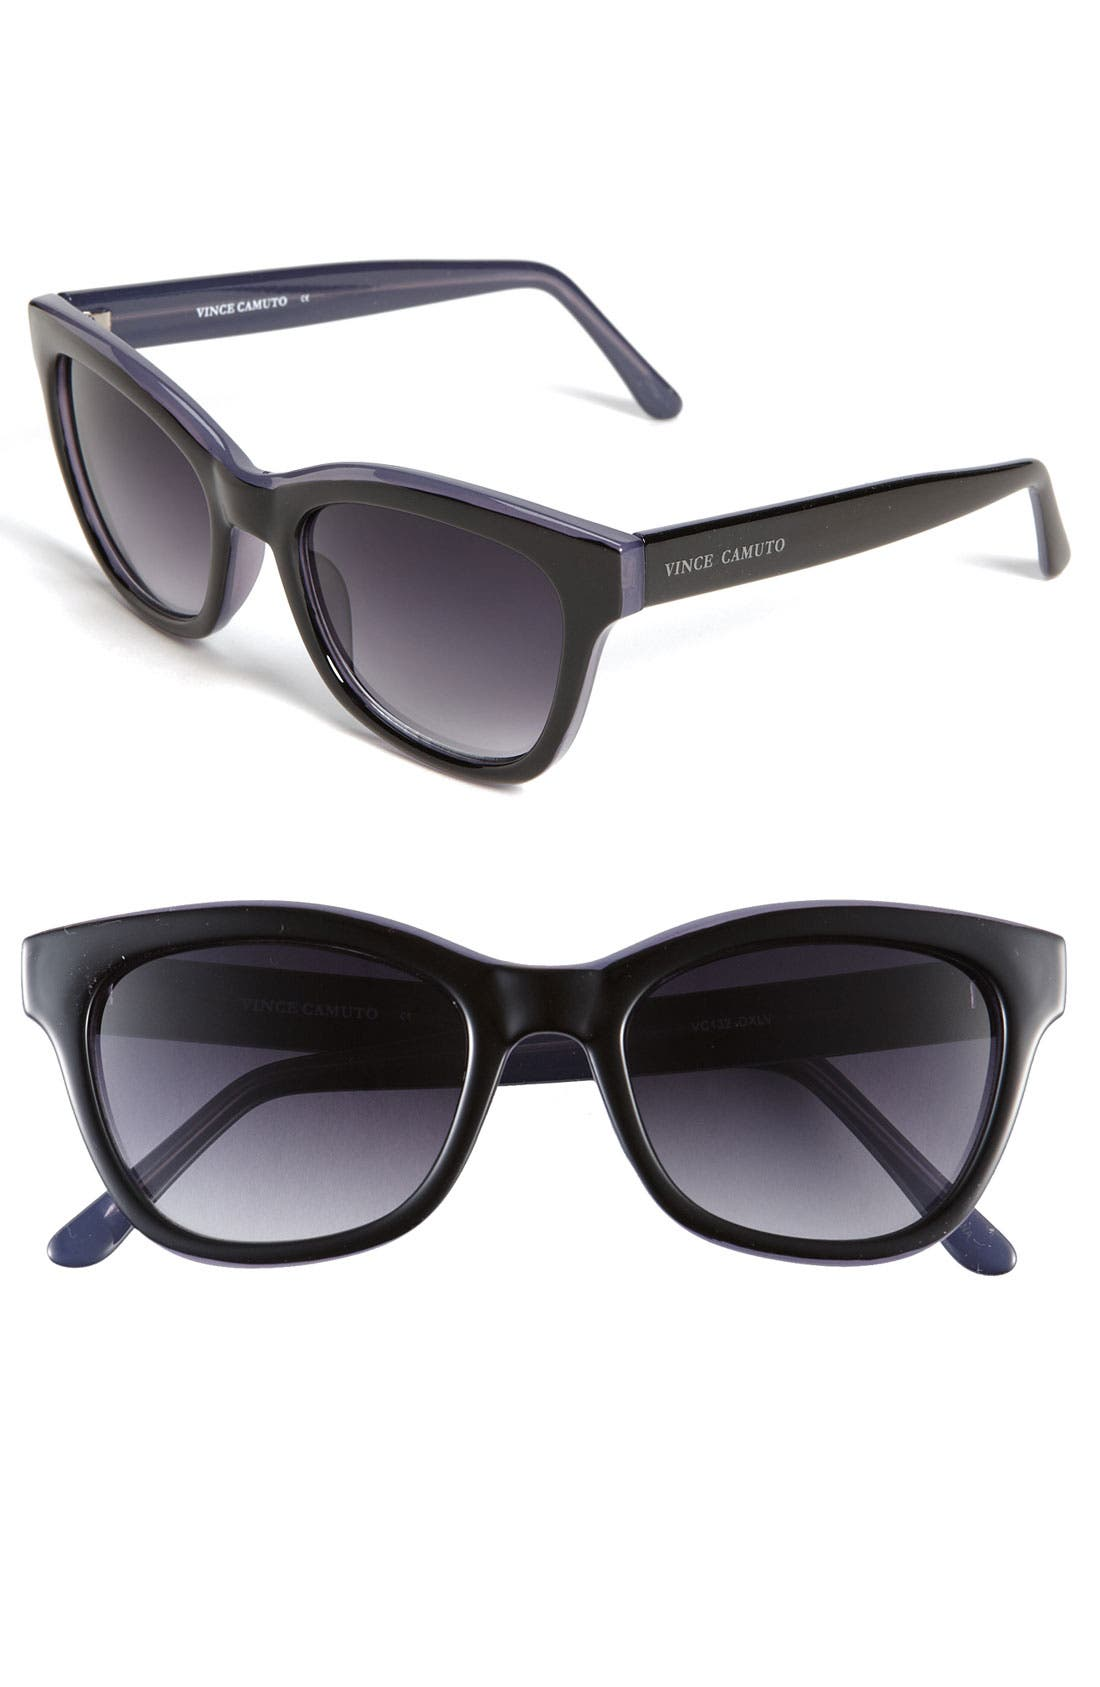 Main Image - Vince Camuto 50mm Retro Inspired Plastic Sunglasses